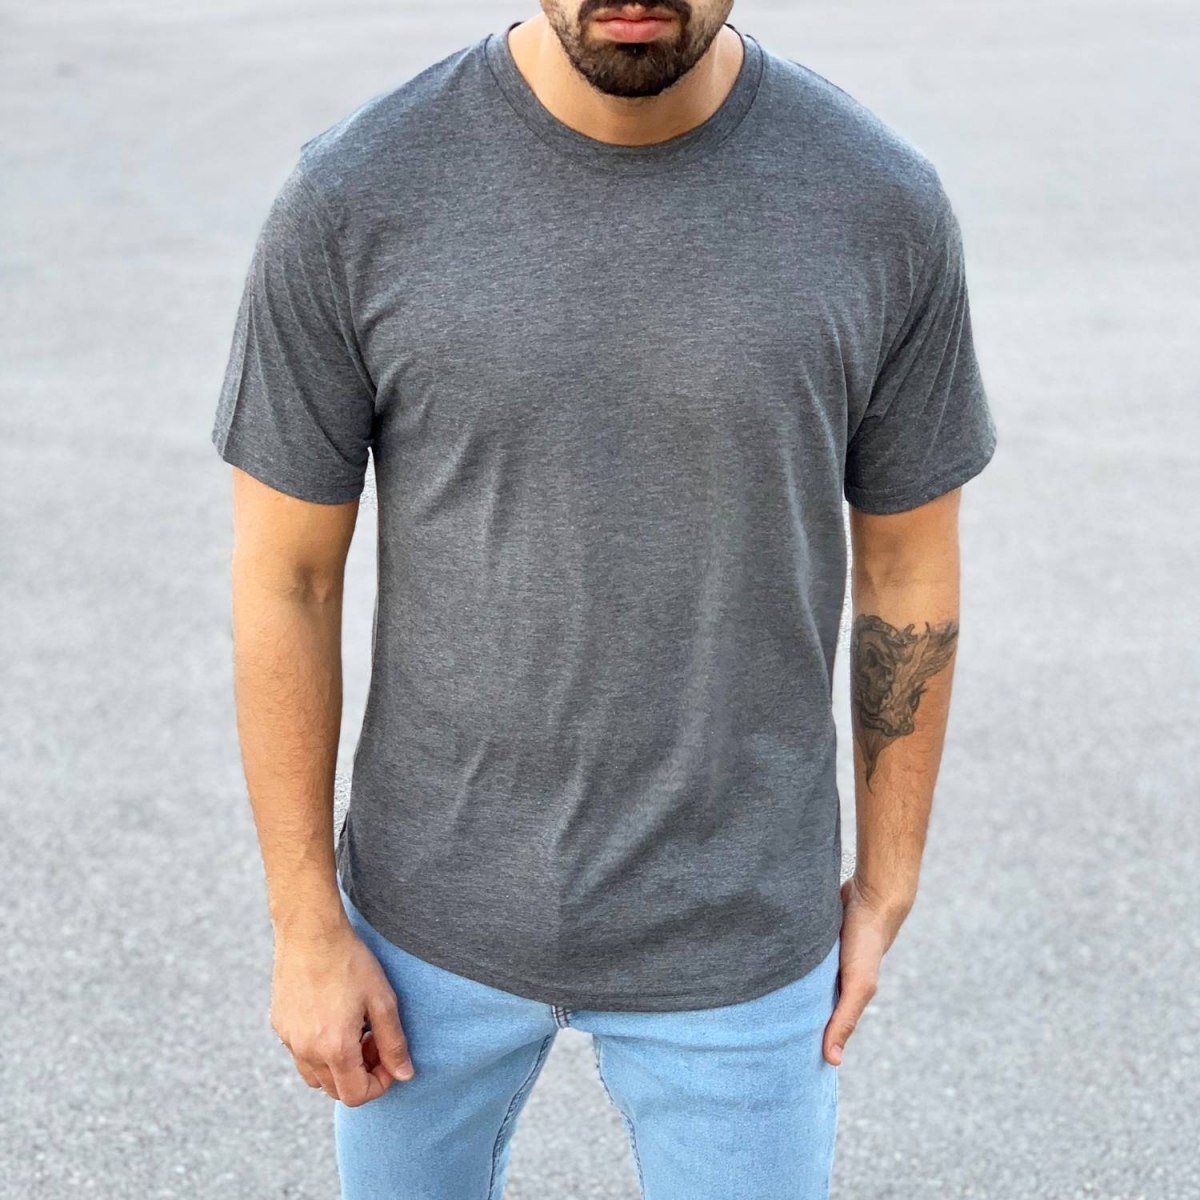 Men's Basic Round Neck...